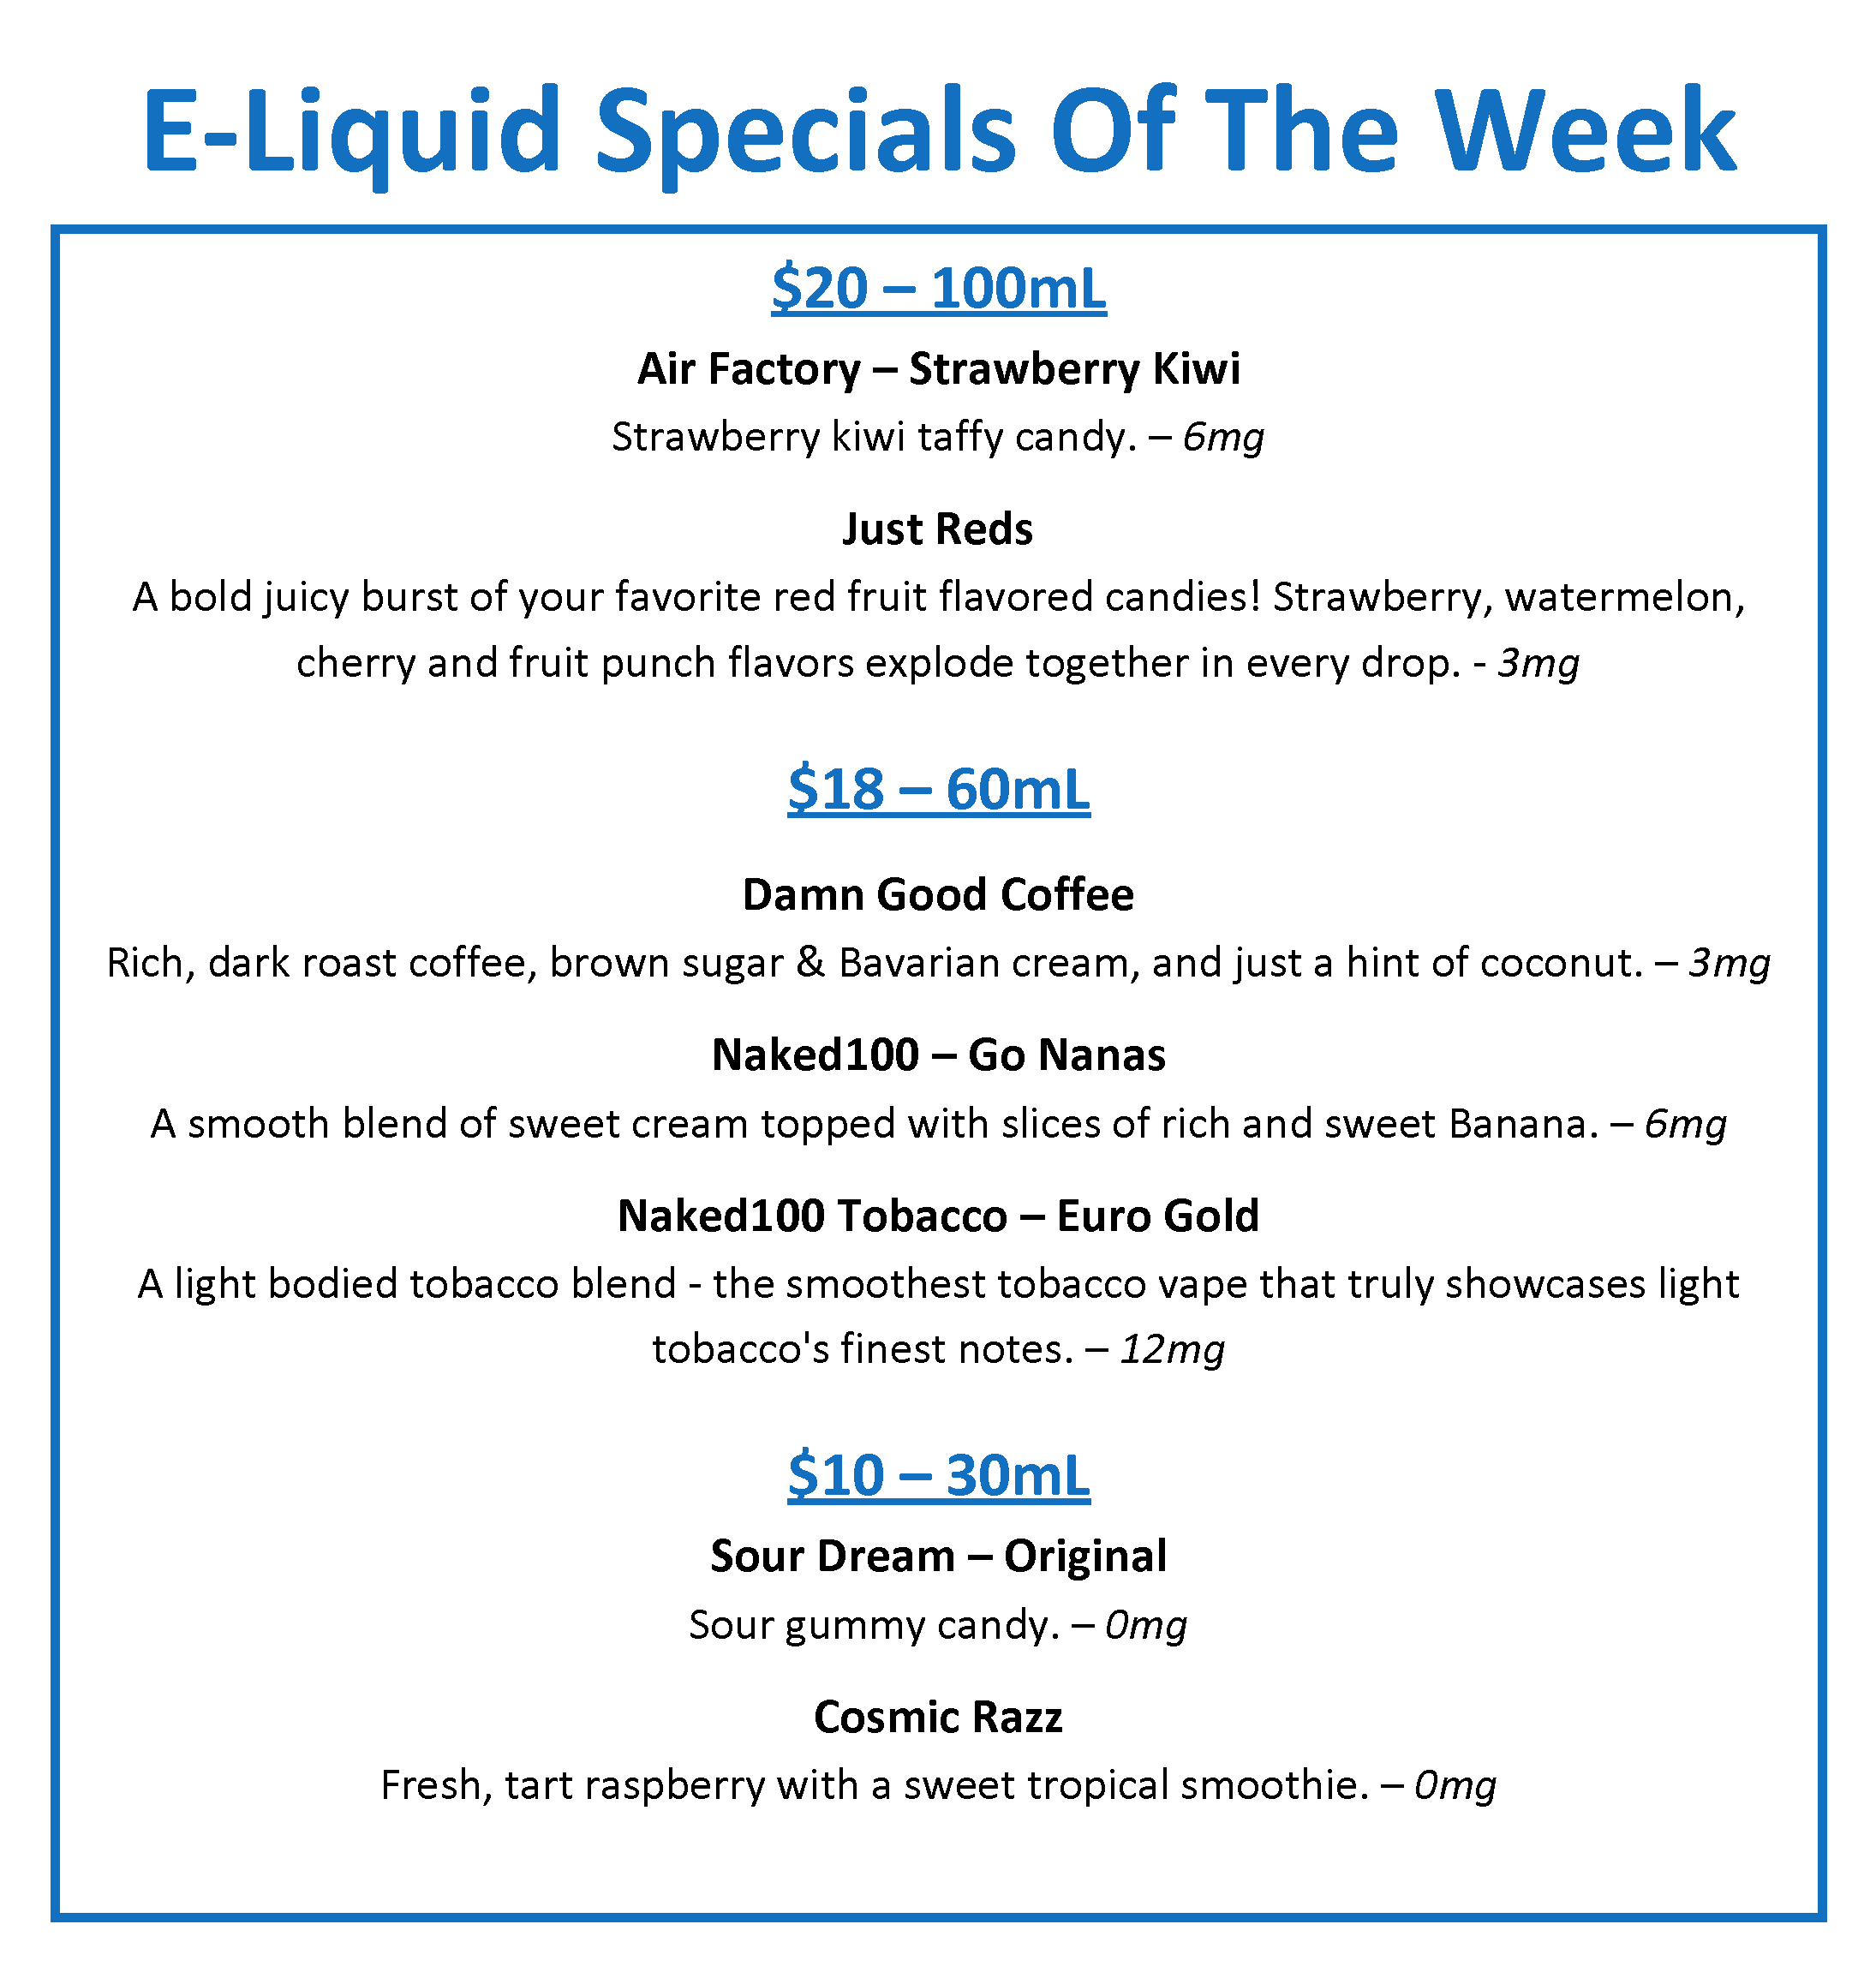 specials-of-the-week-11-17.png